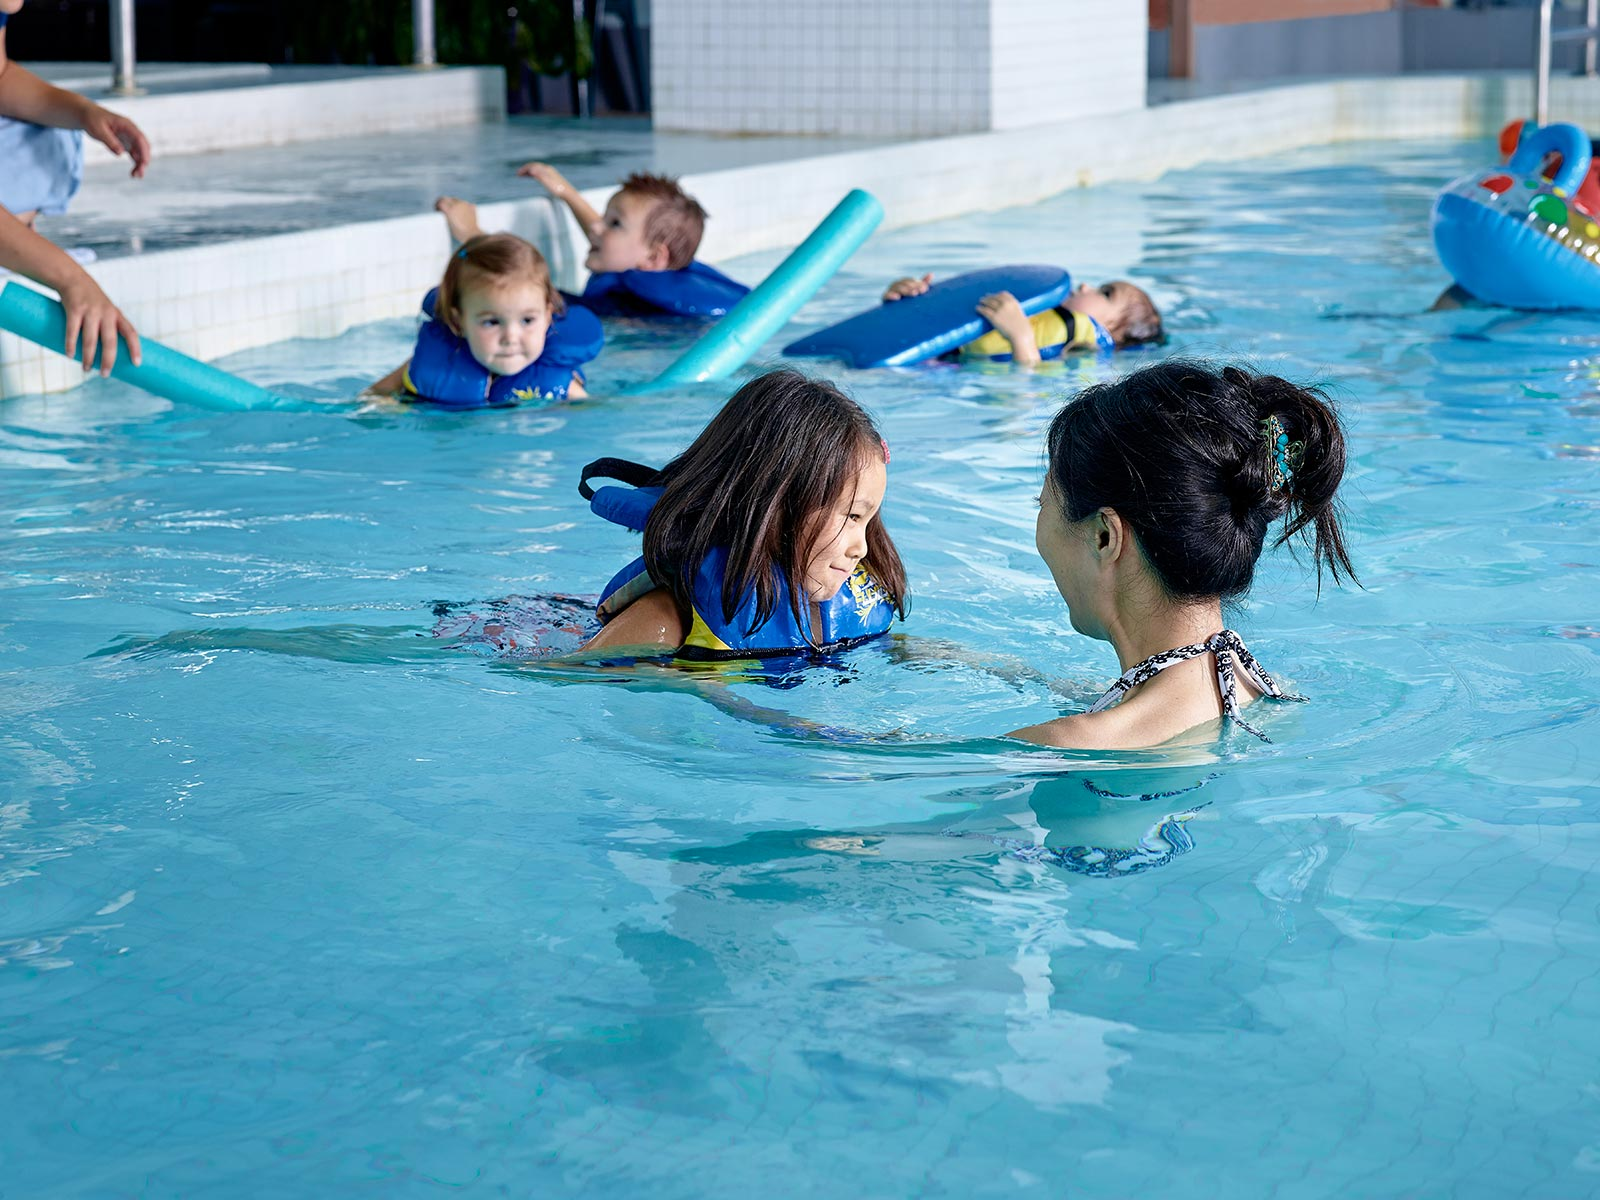 Family hotel with fun activities chelsea hotel toronto - Swimming pool activities for kids ...